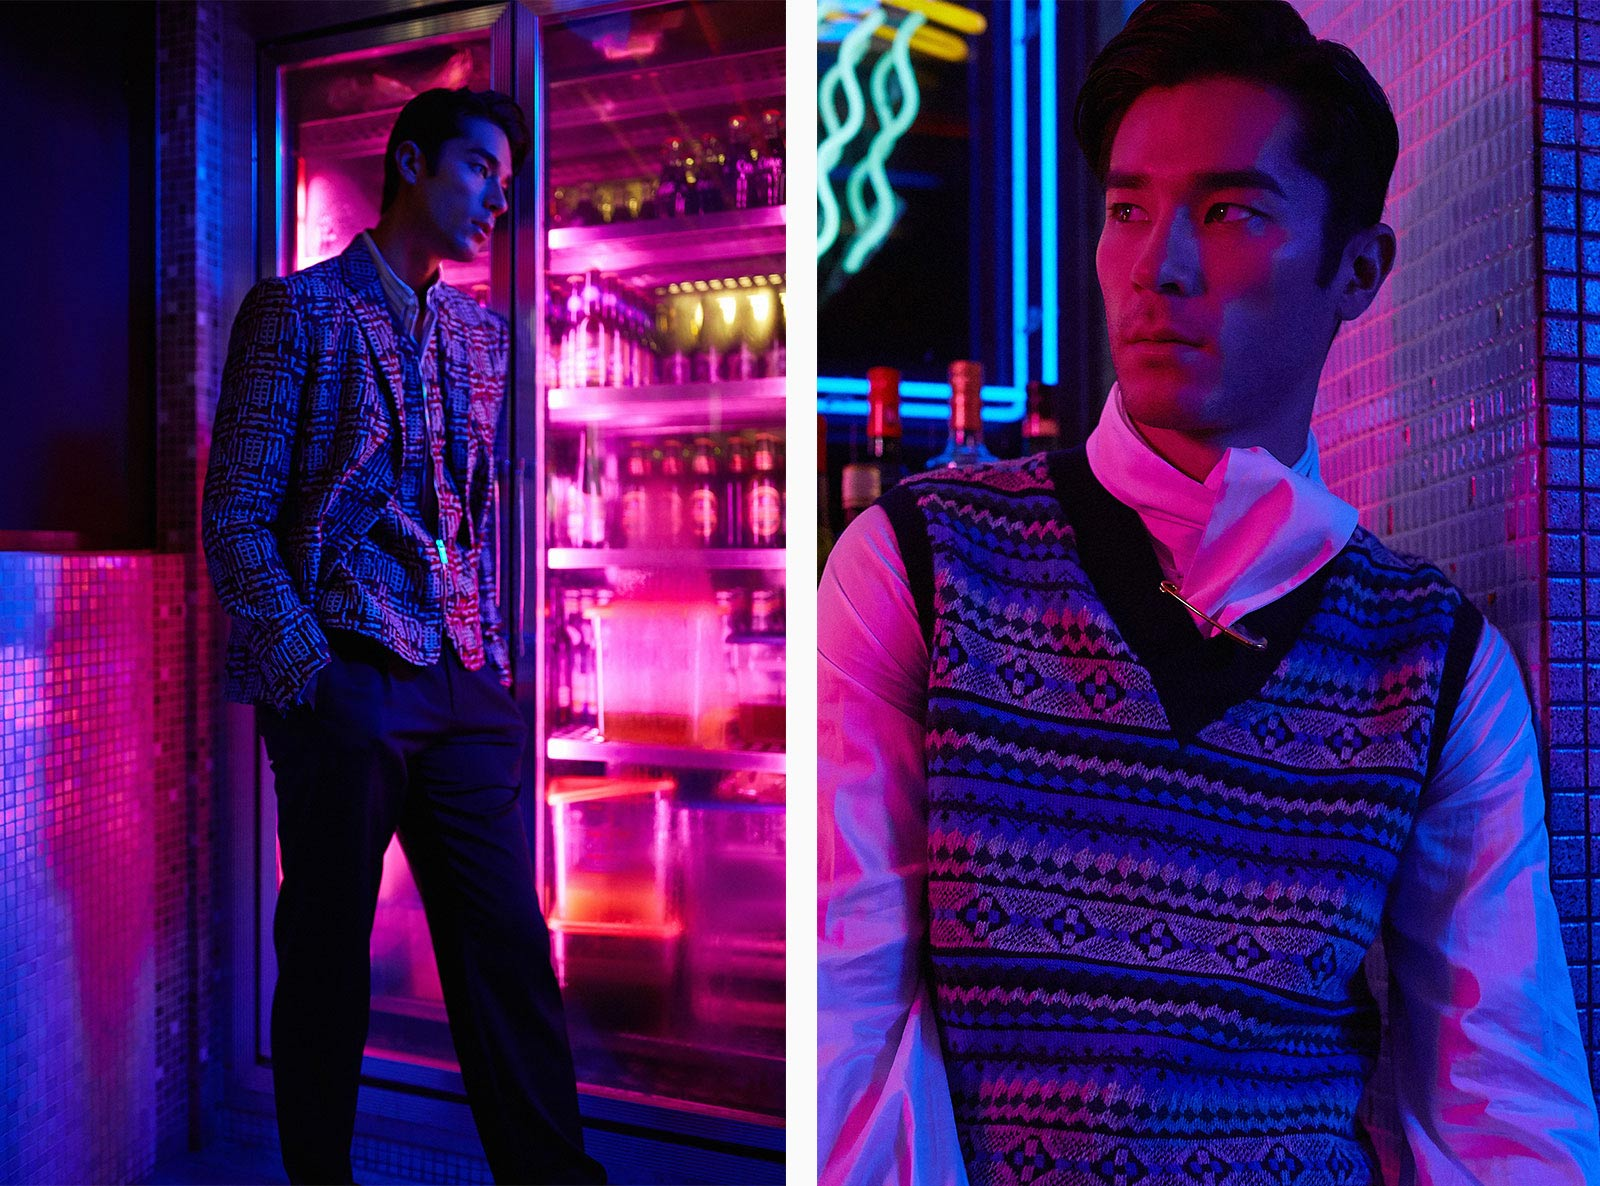 A model wears new season Giorgio Armani and Burberry while poses in a neon-lit bar